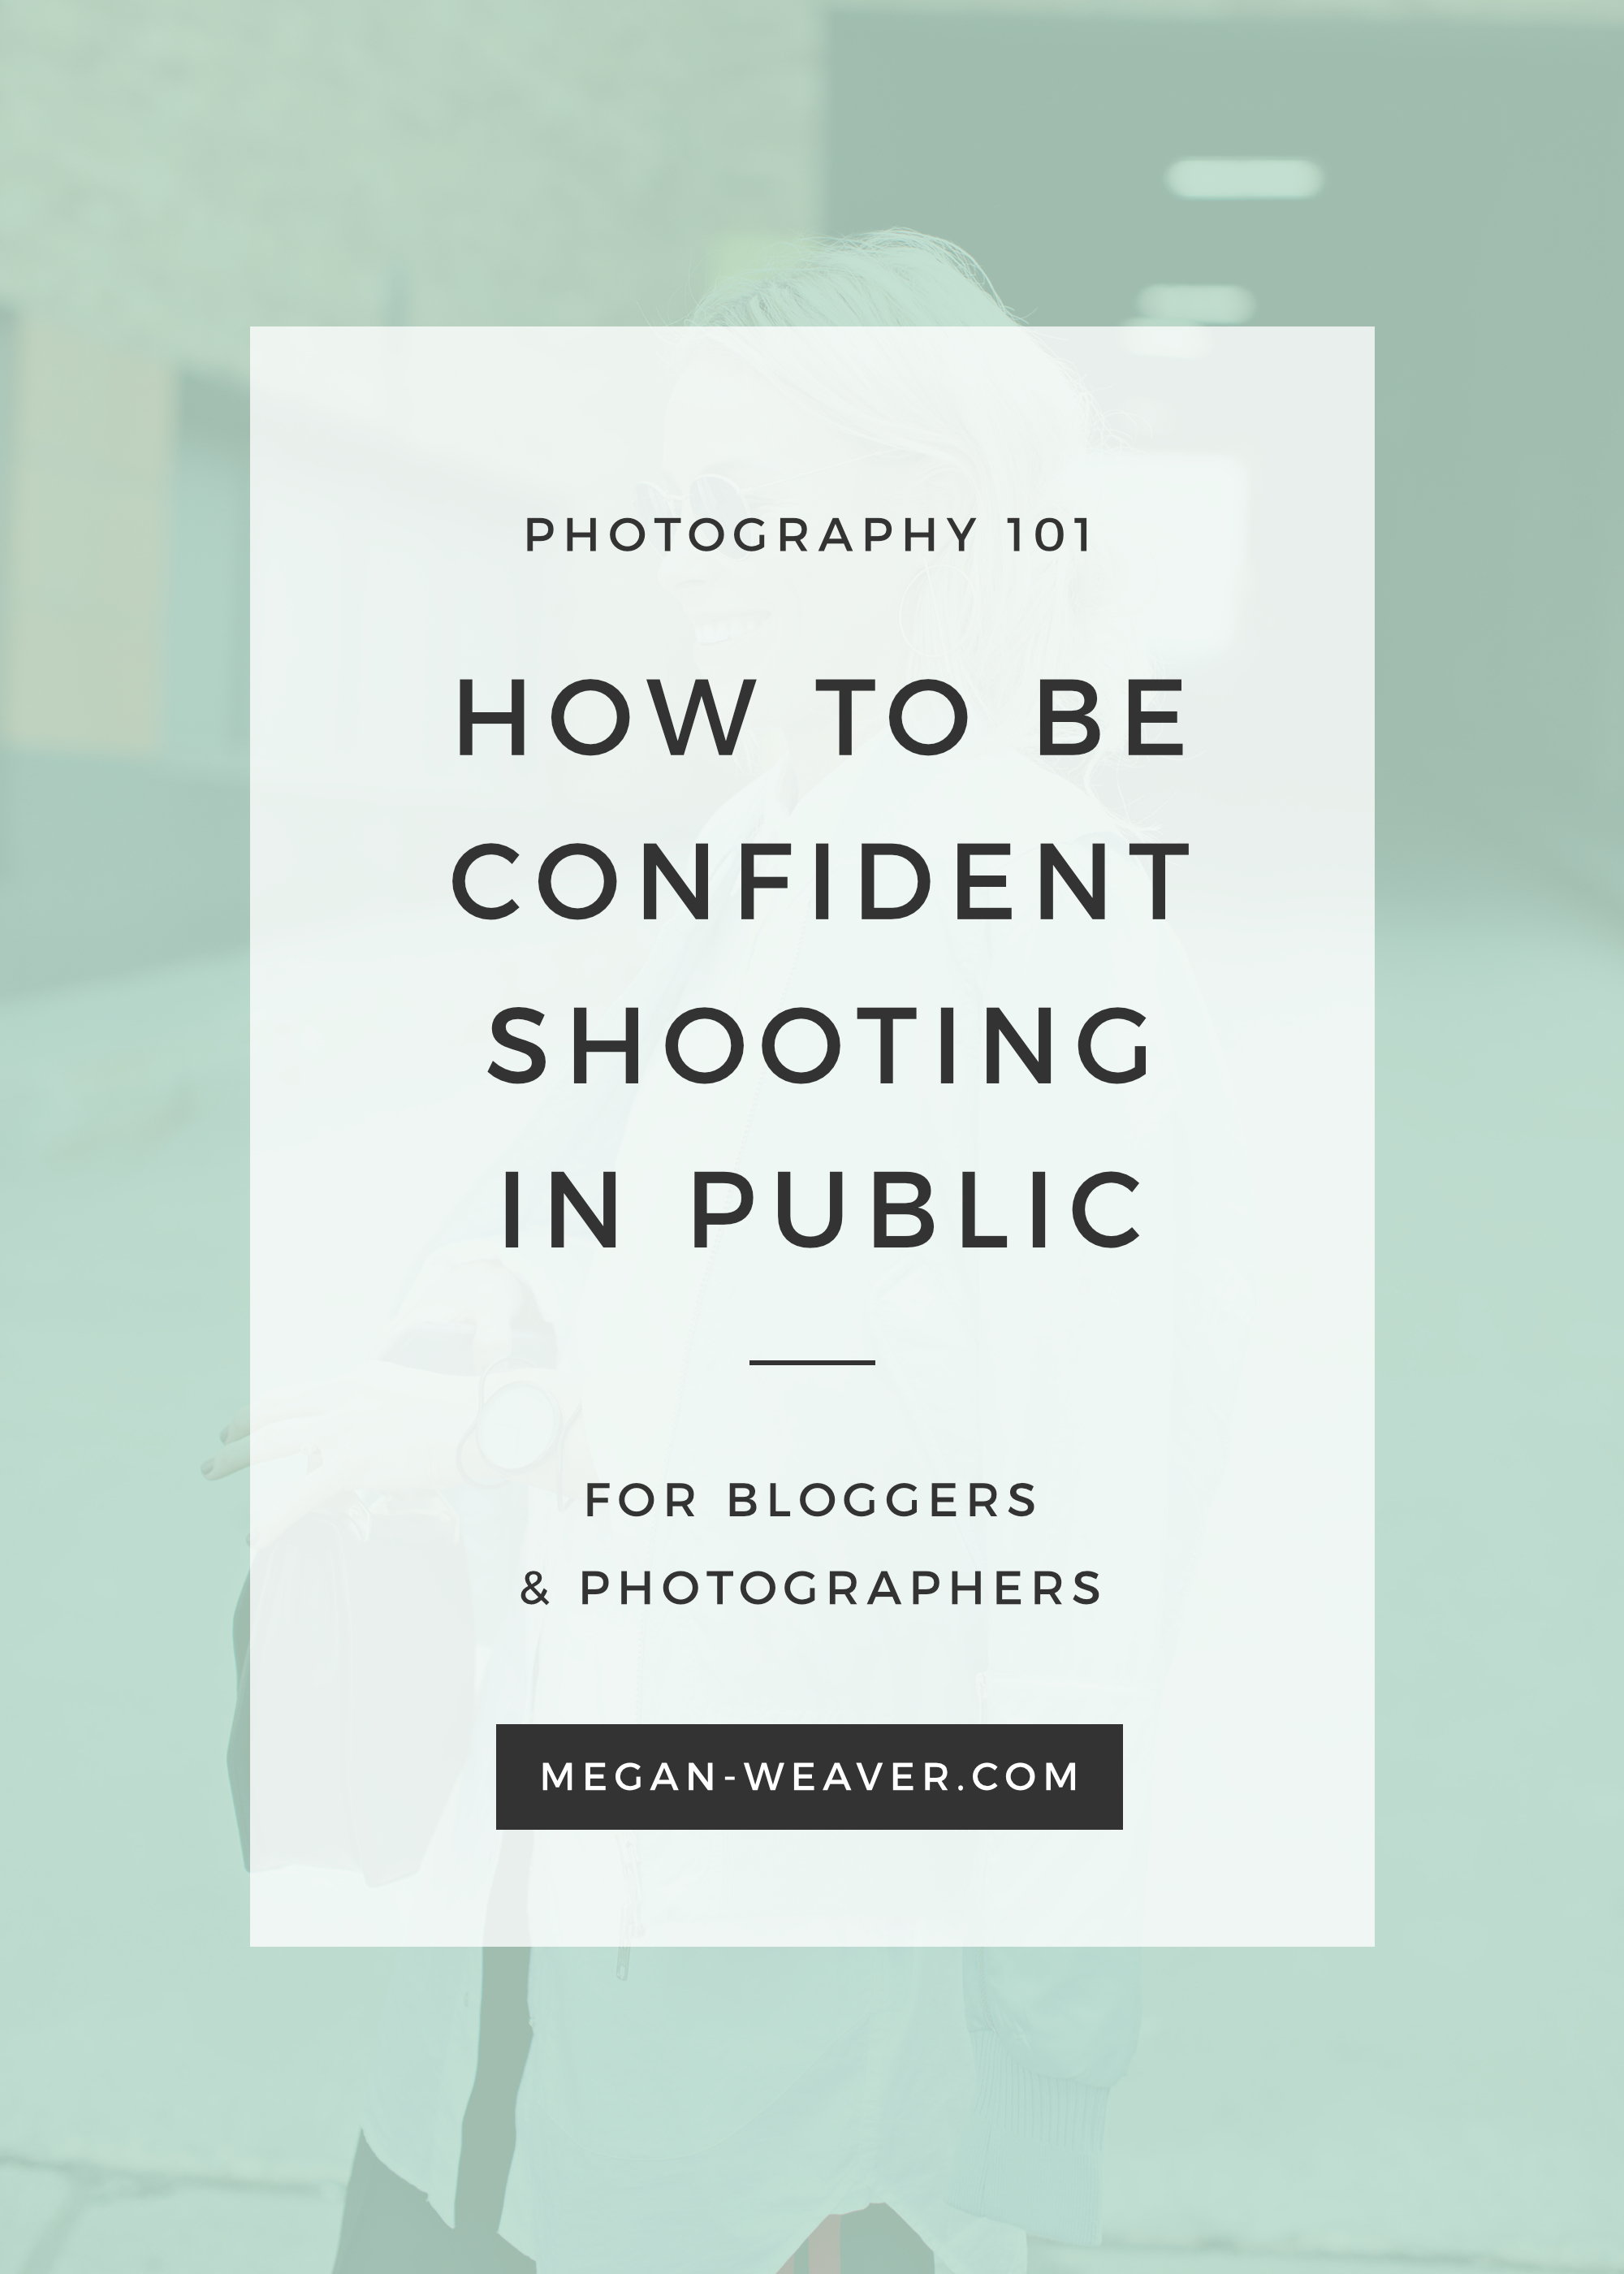 Shooting in public (whether you're the subject or the photographer) can be nerve-wracking, which is why it's great to have an arsenal of tips to remember in your back pocket!